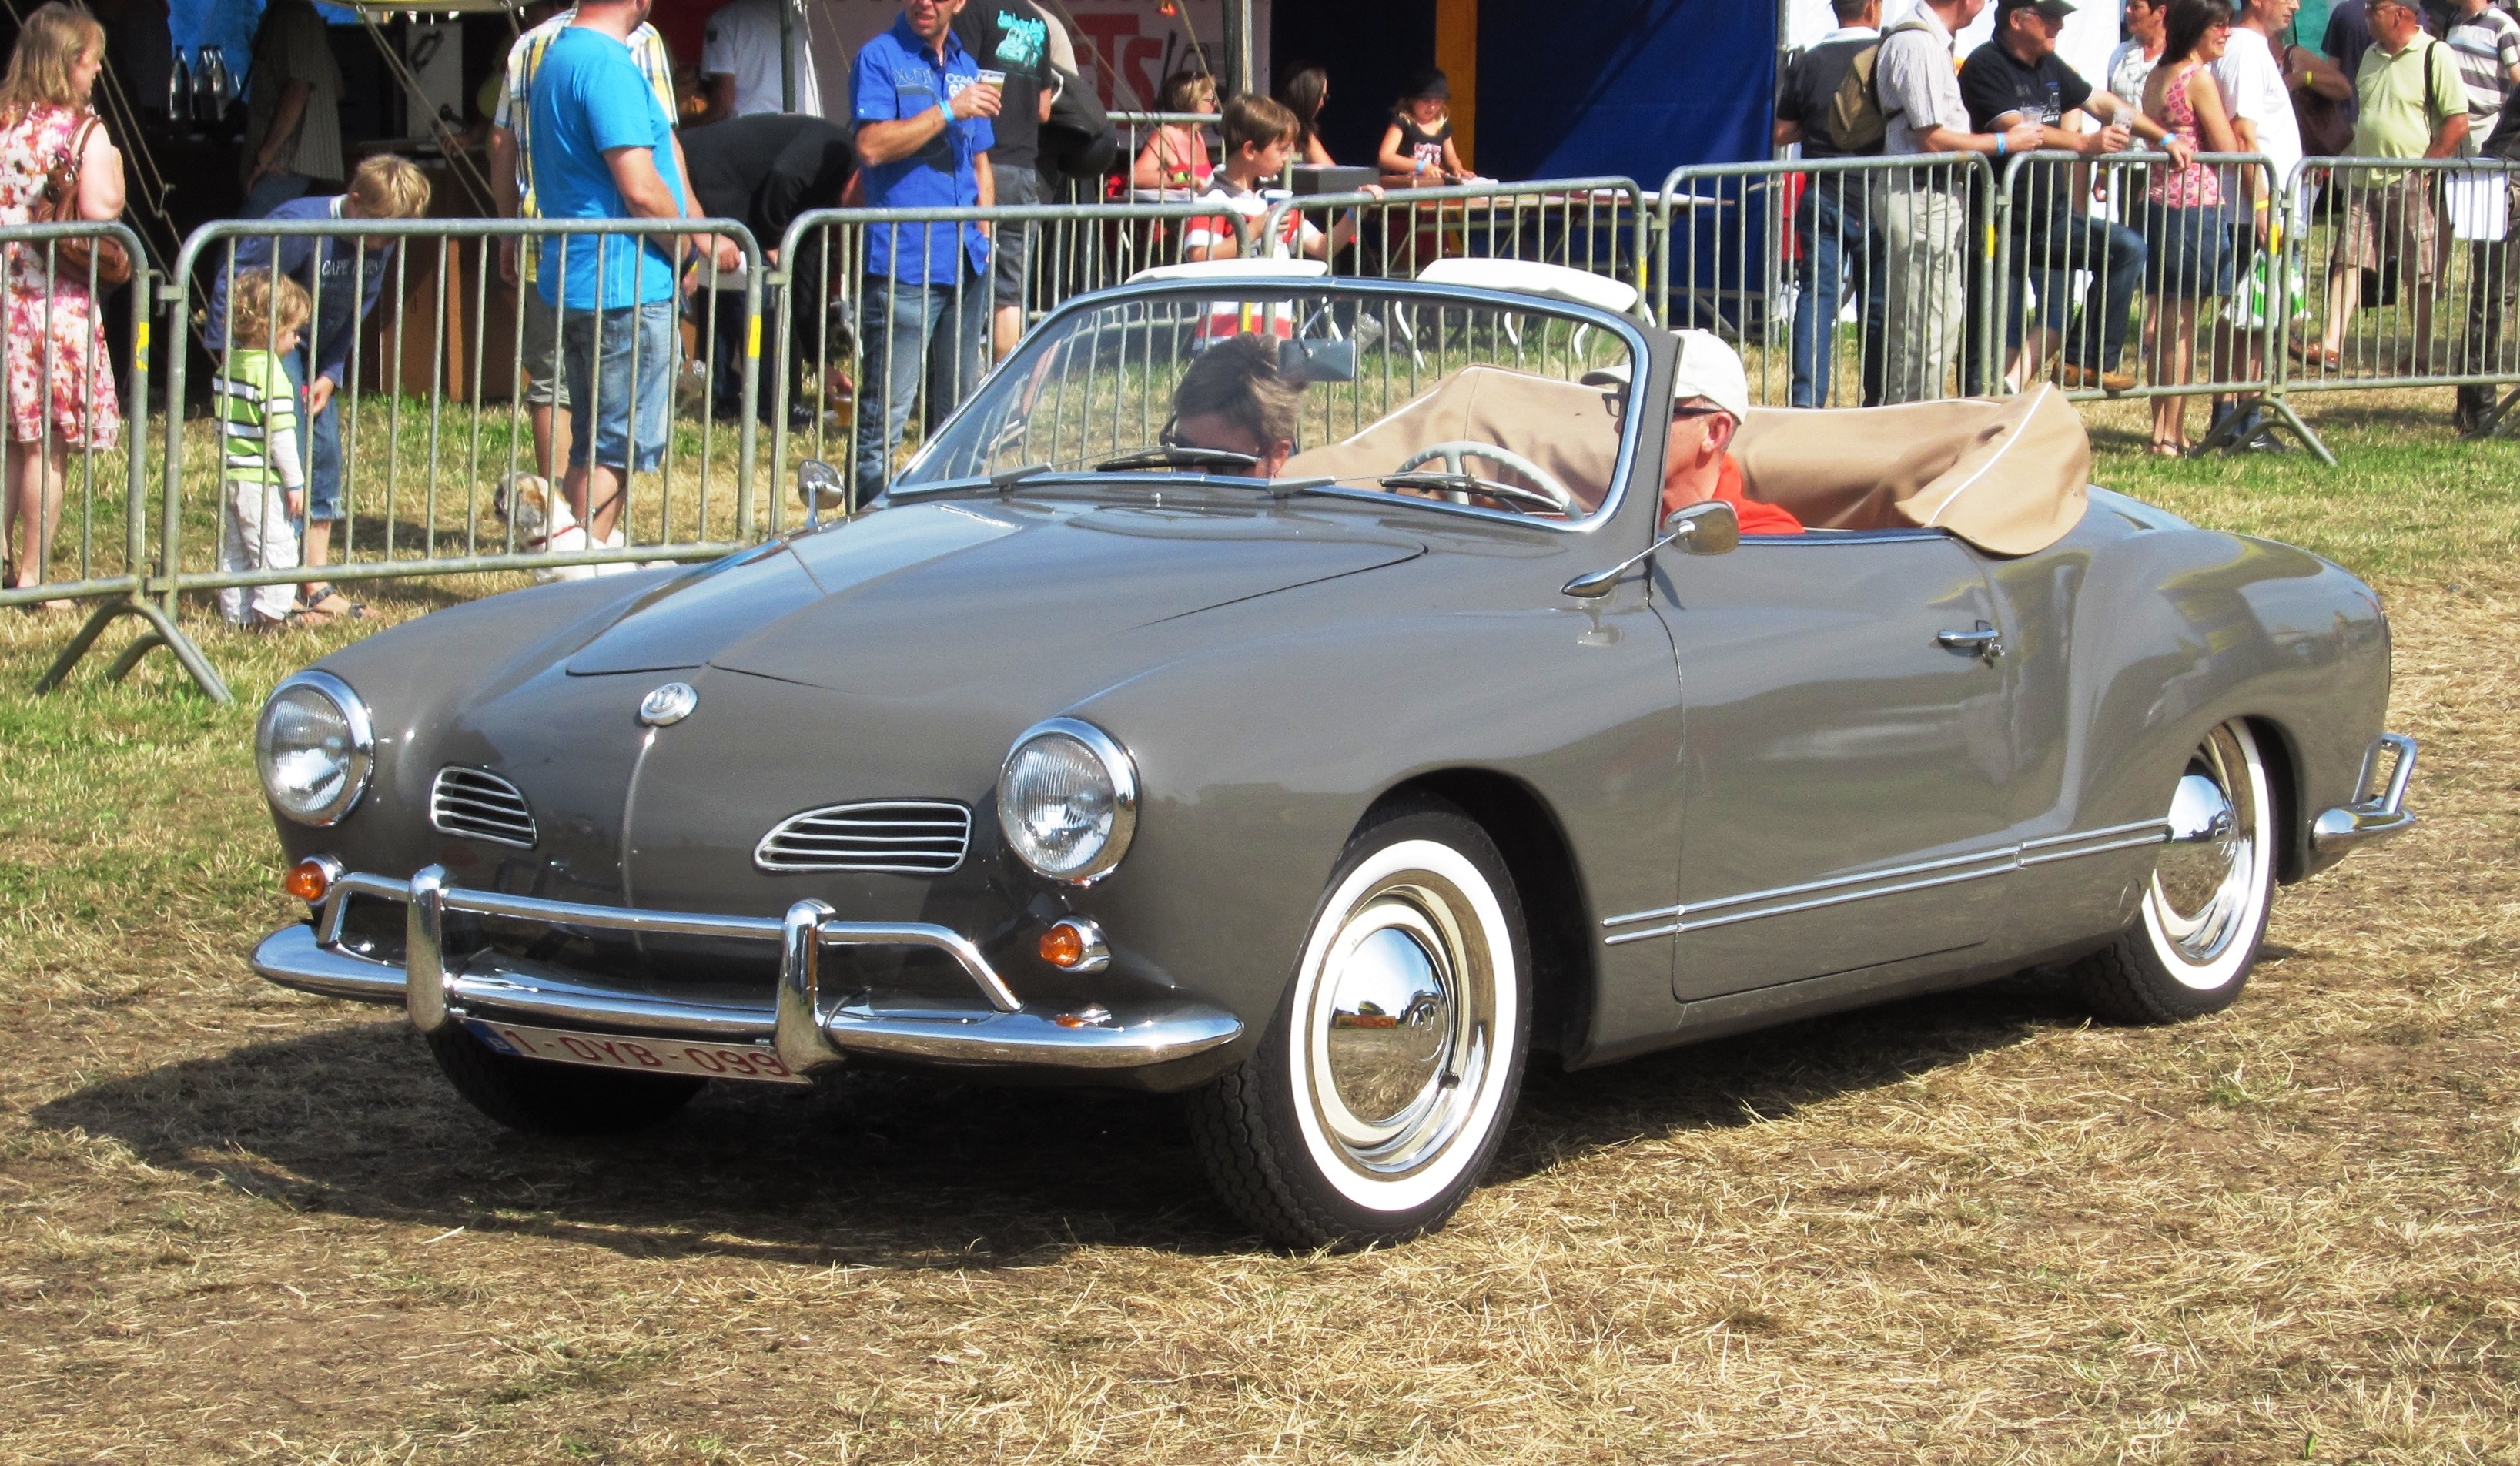 file vw karmann ghia typ 14 cabriolet in. Black Bedroom Furniture Sets. Home Design Ideas